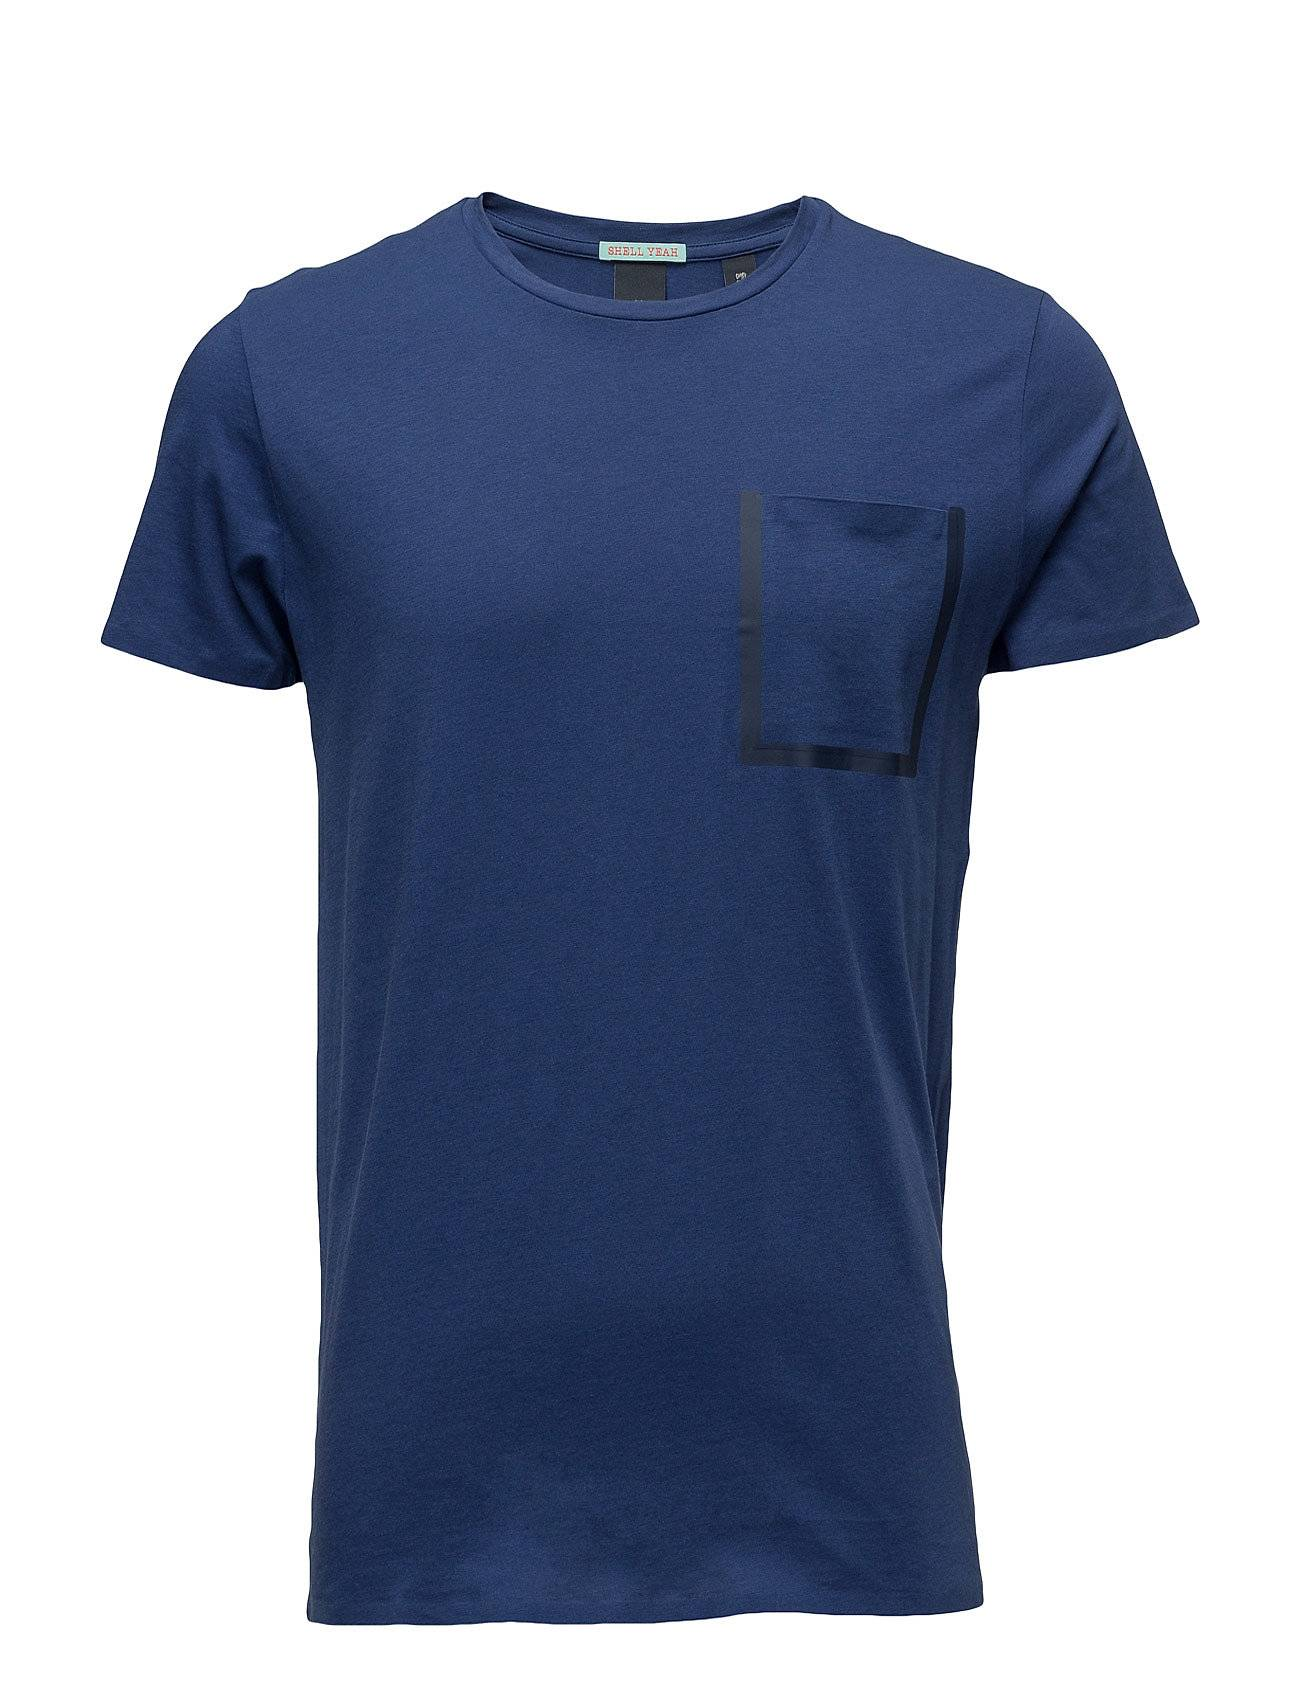 Scotch & Soda Tee With Glued Seams And Contrast Tape At Chestpocket